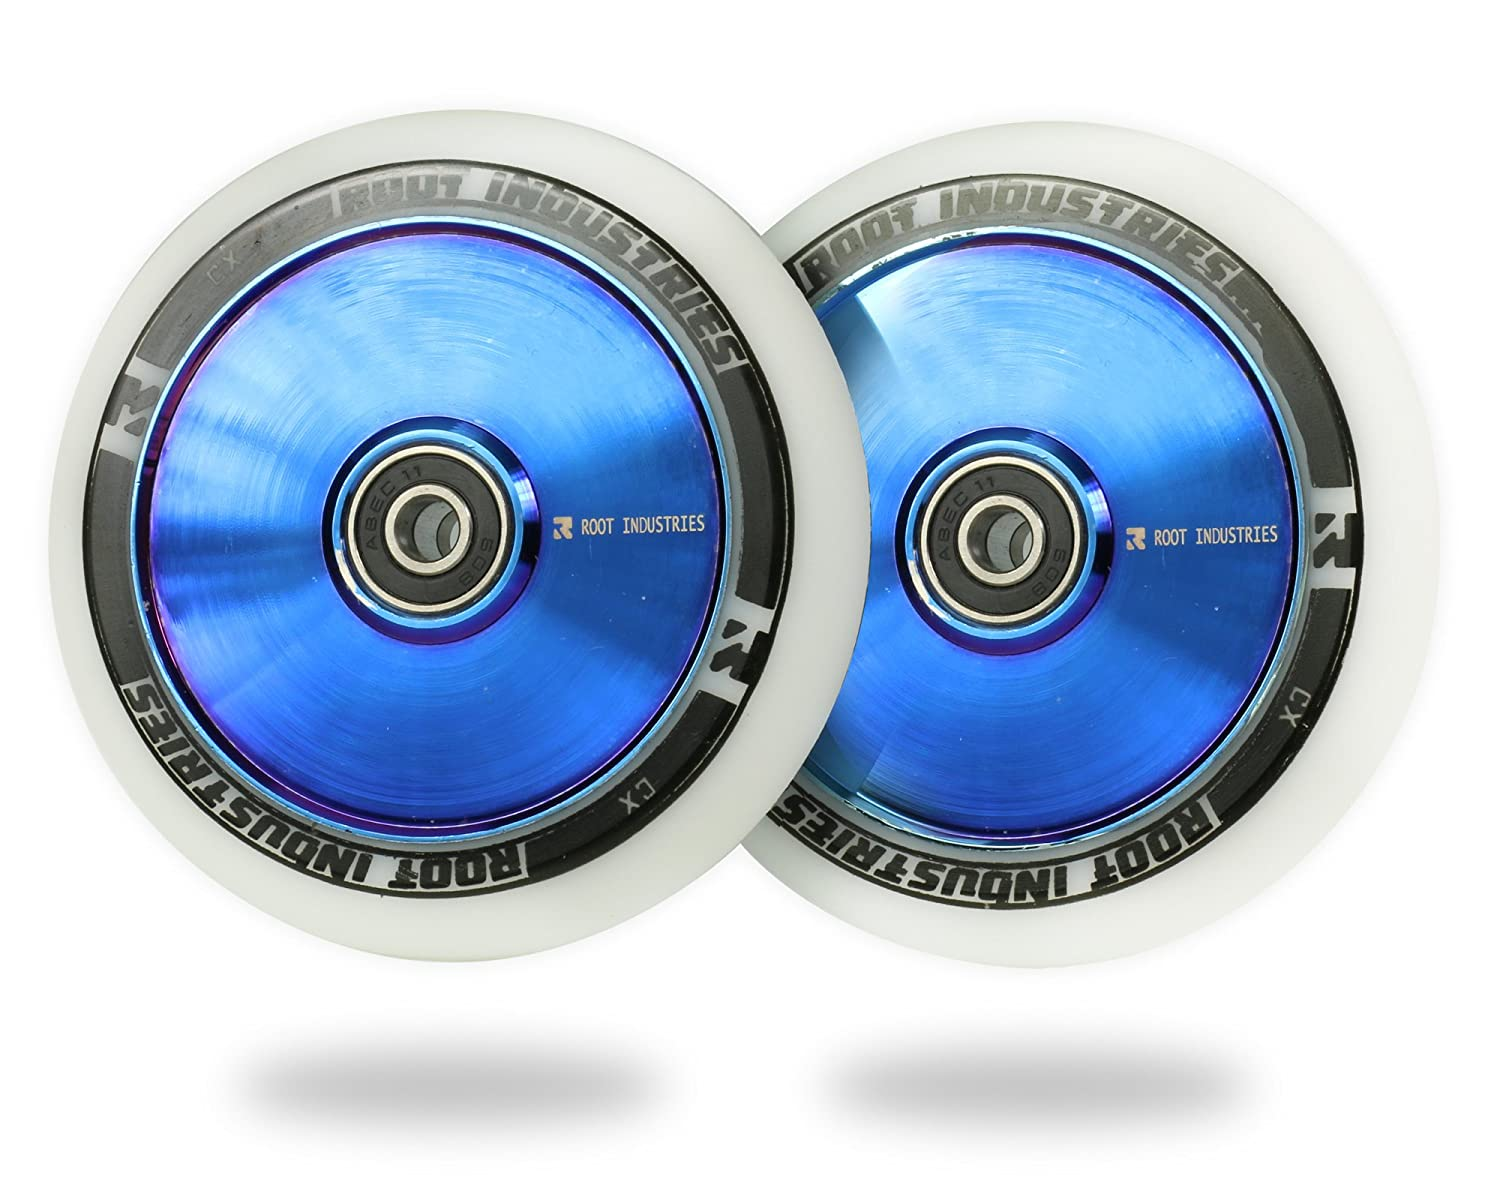 Bearings Installed Pair 24mm x 110mm Kick Push Scooter Tires Fit Most Setups Pro 110mm Freestyle Urethane Root Industries 110mm AIR Stunt Trick Scooter Wheels -Smooth Fast Hollowcore